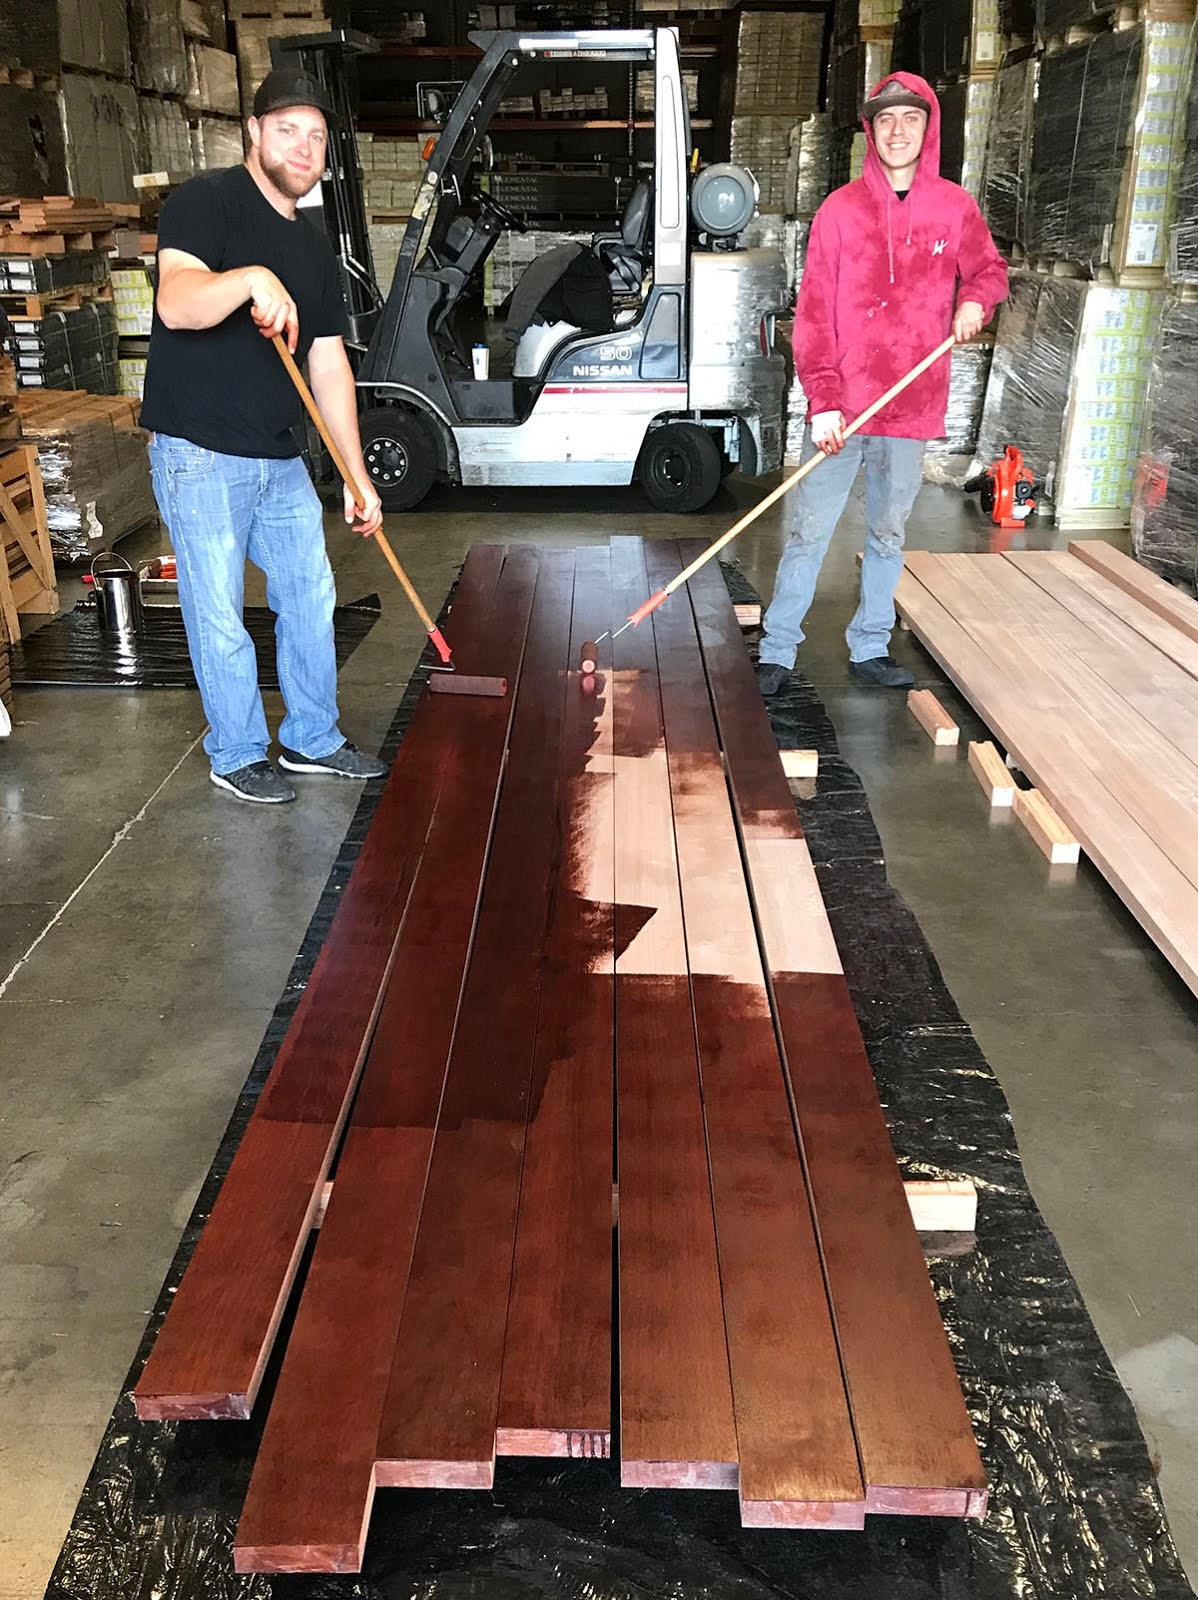 In Order To Correctly Apply ExoShield Wood Finish, The First Step Is  Obtaining A Very Clean And Smooth Surface. Be Sure To Scrub The Wood  Thoroughly ...